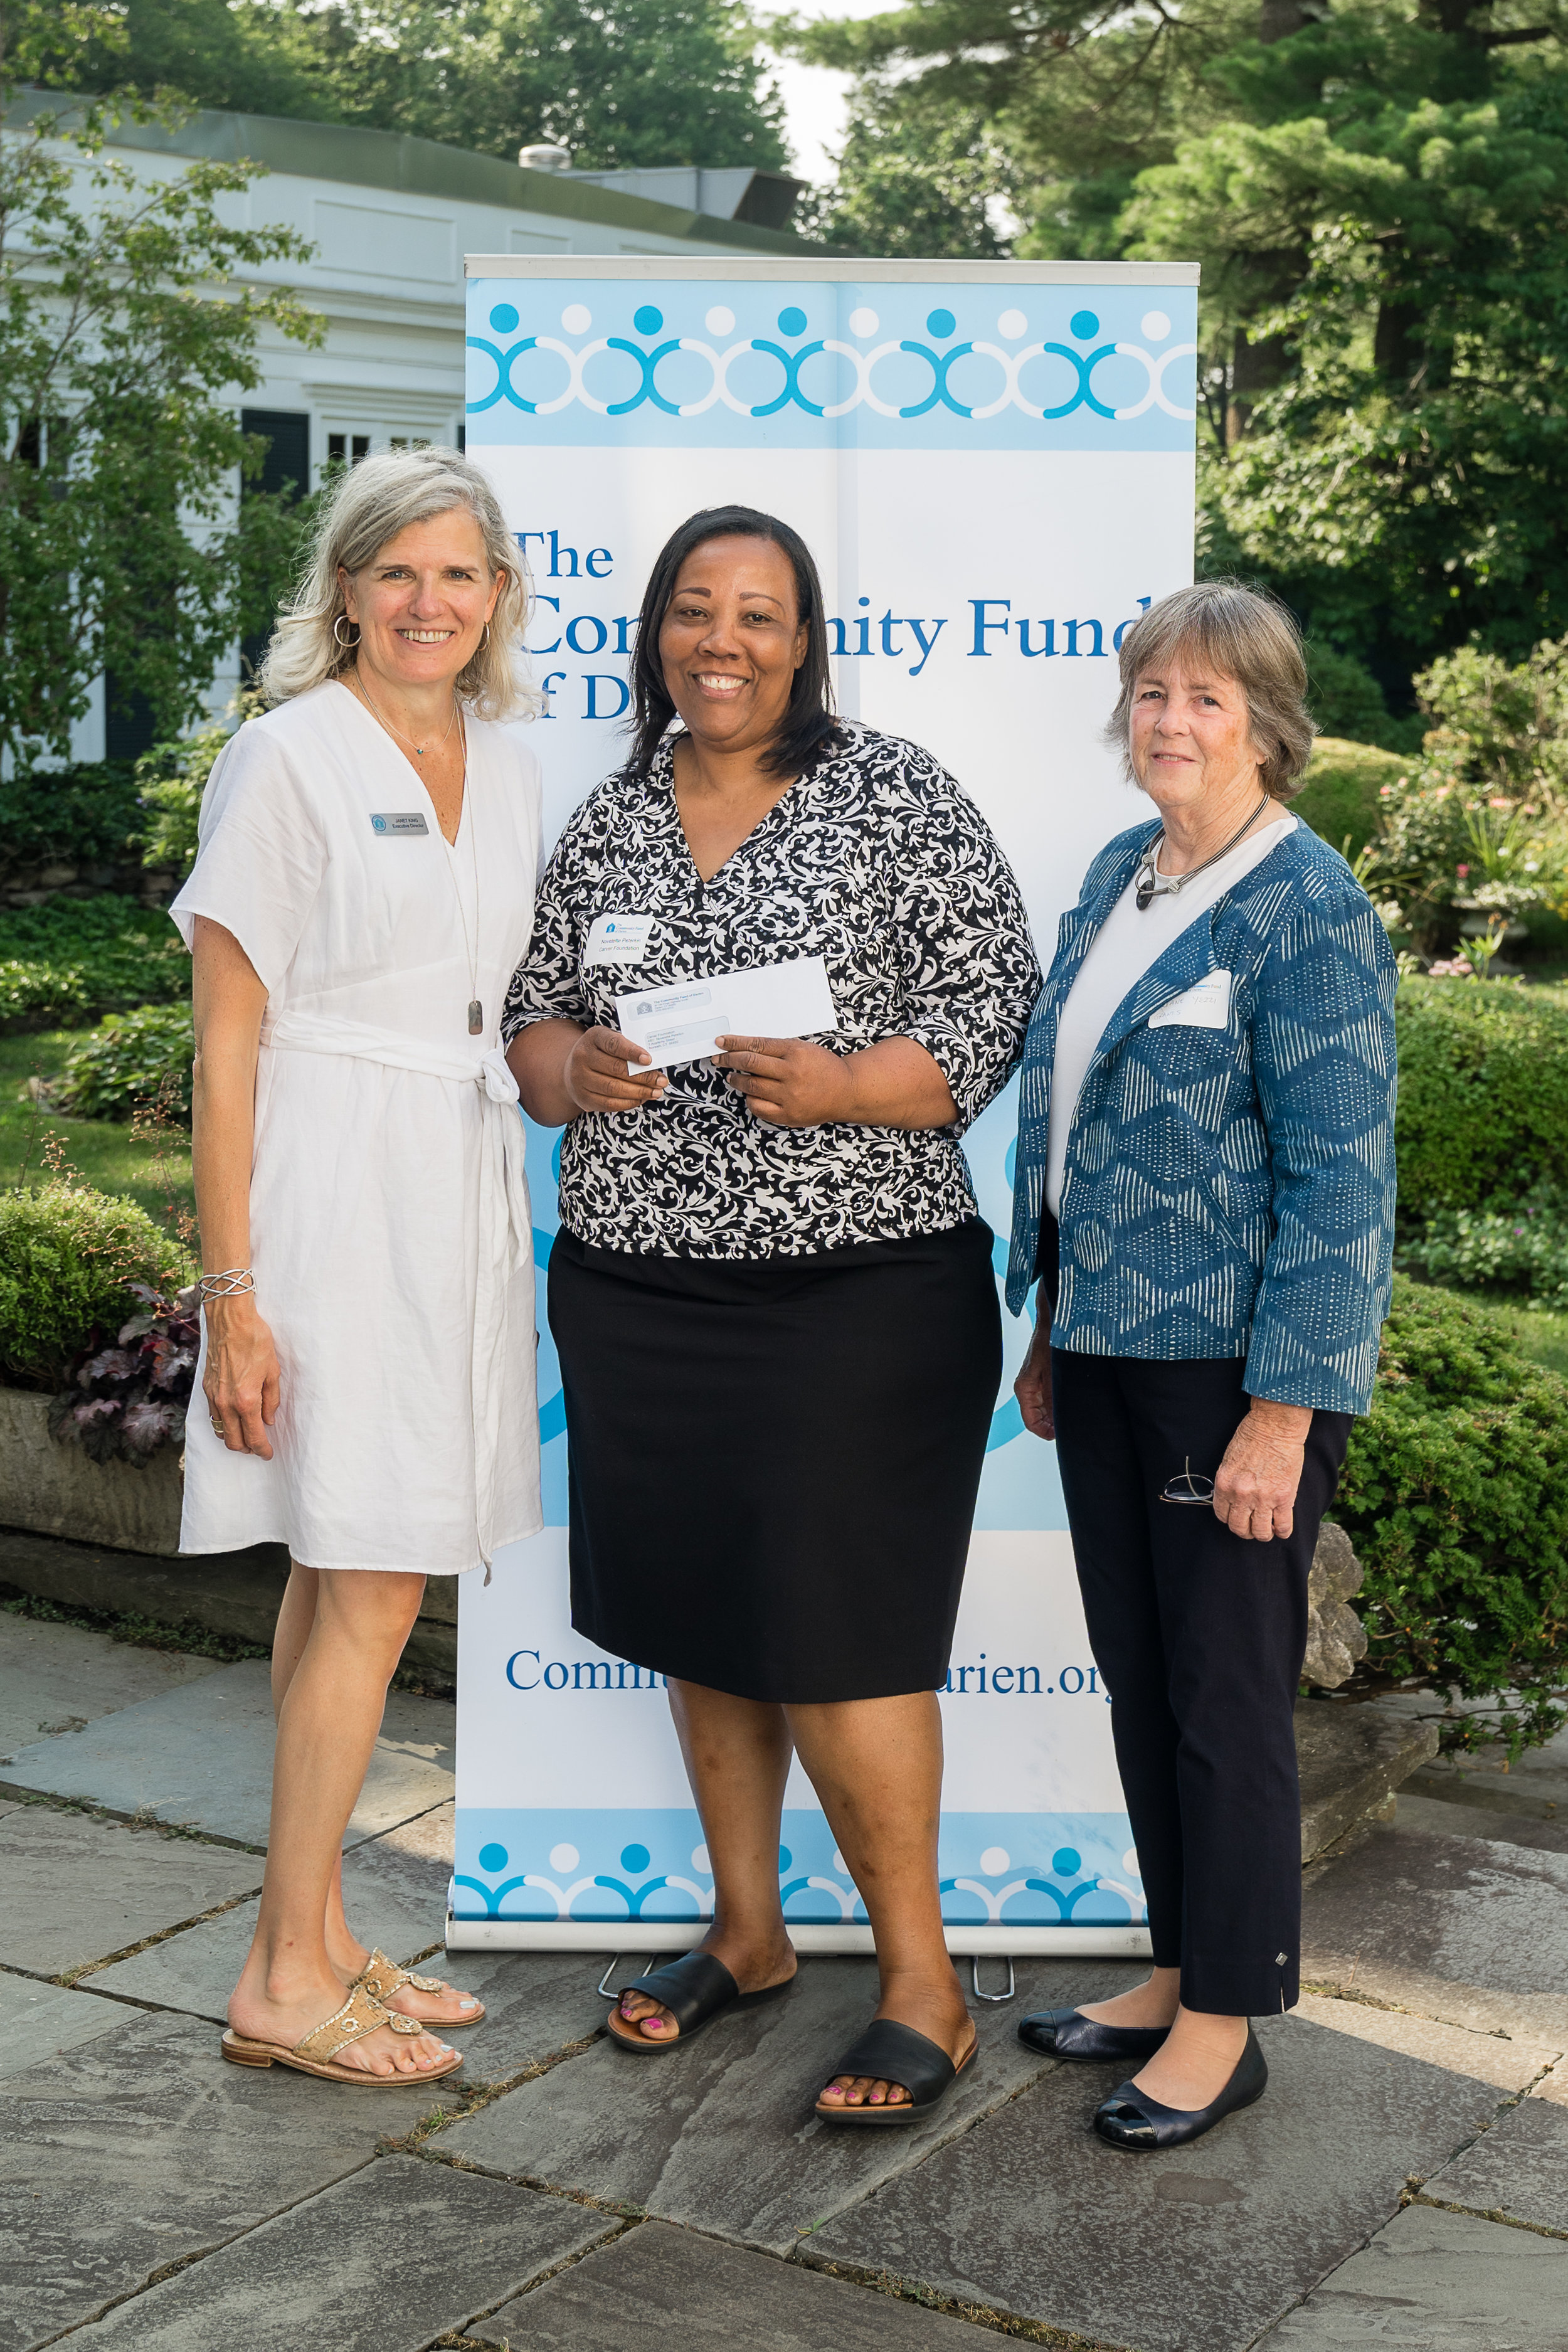 L-R: Community Fund of Darien's Executive Director, Janet King; Novelette Peterkin, Carver's CEO; and Jane Yezzi, a Community Fund of Darien volunteer and a volunteer leader for other charities such as A Better Chance (ABC) in Darien.